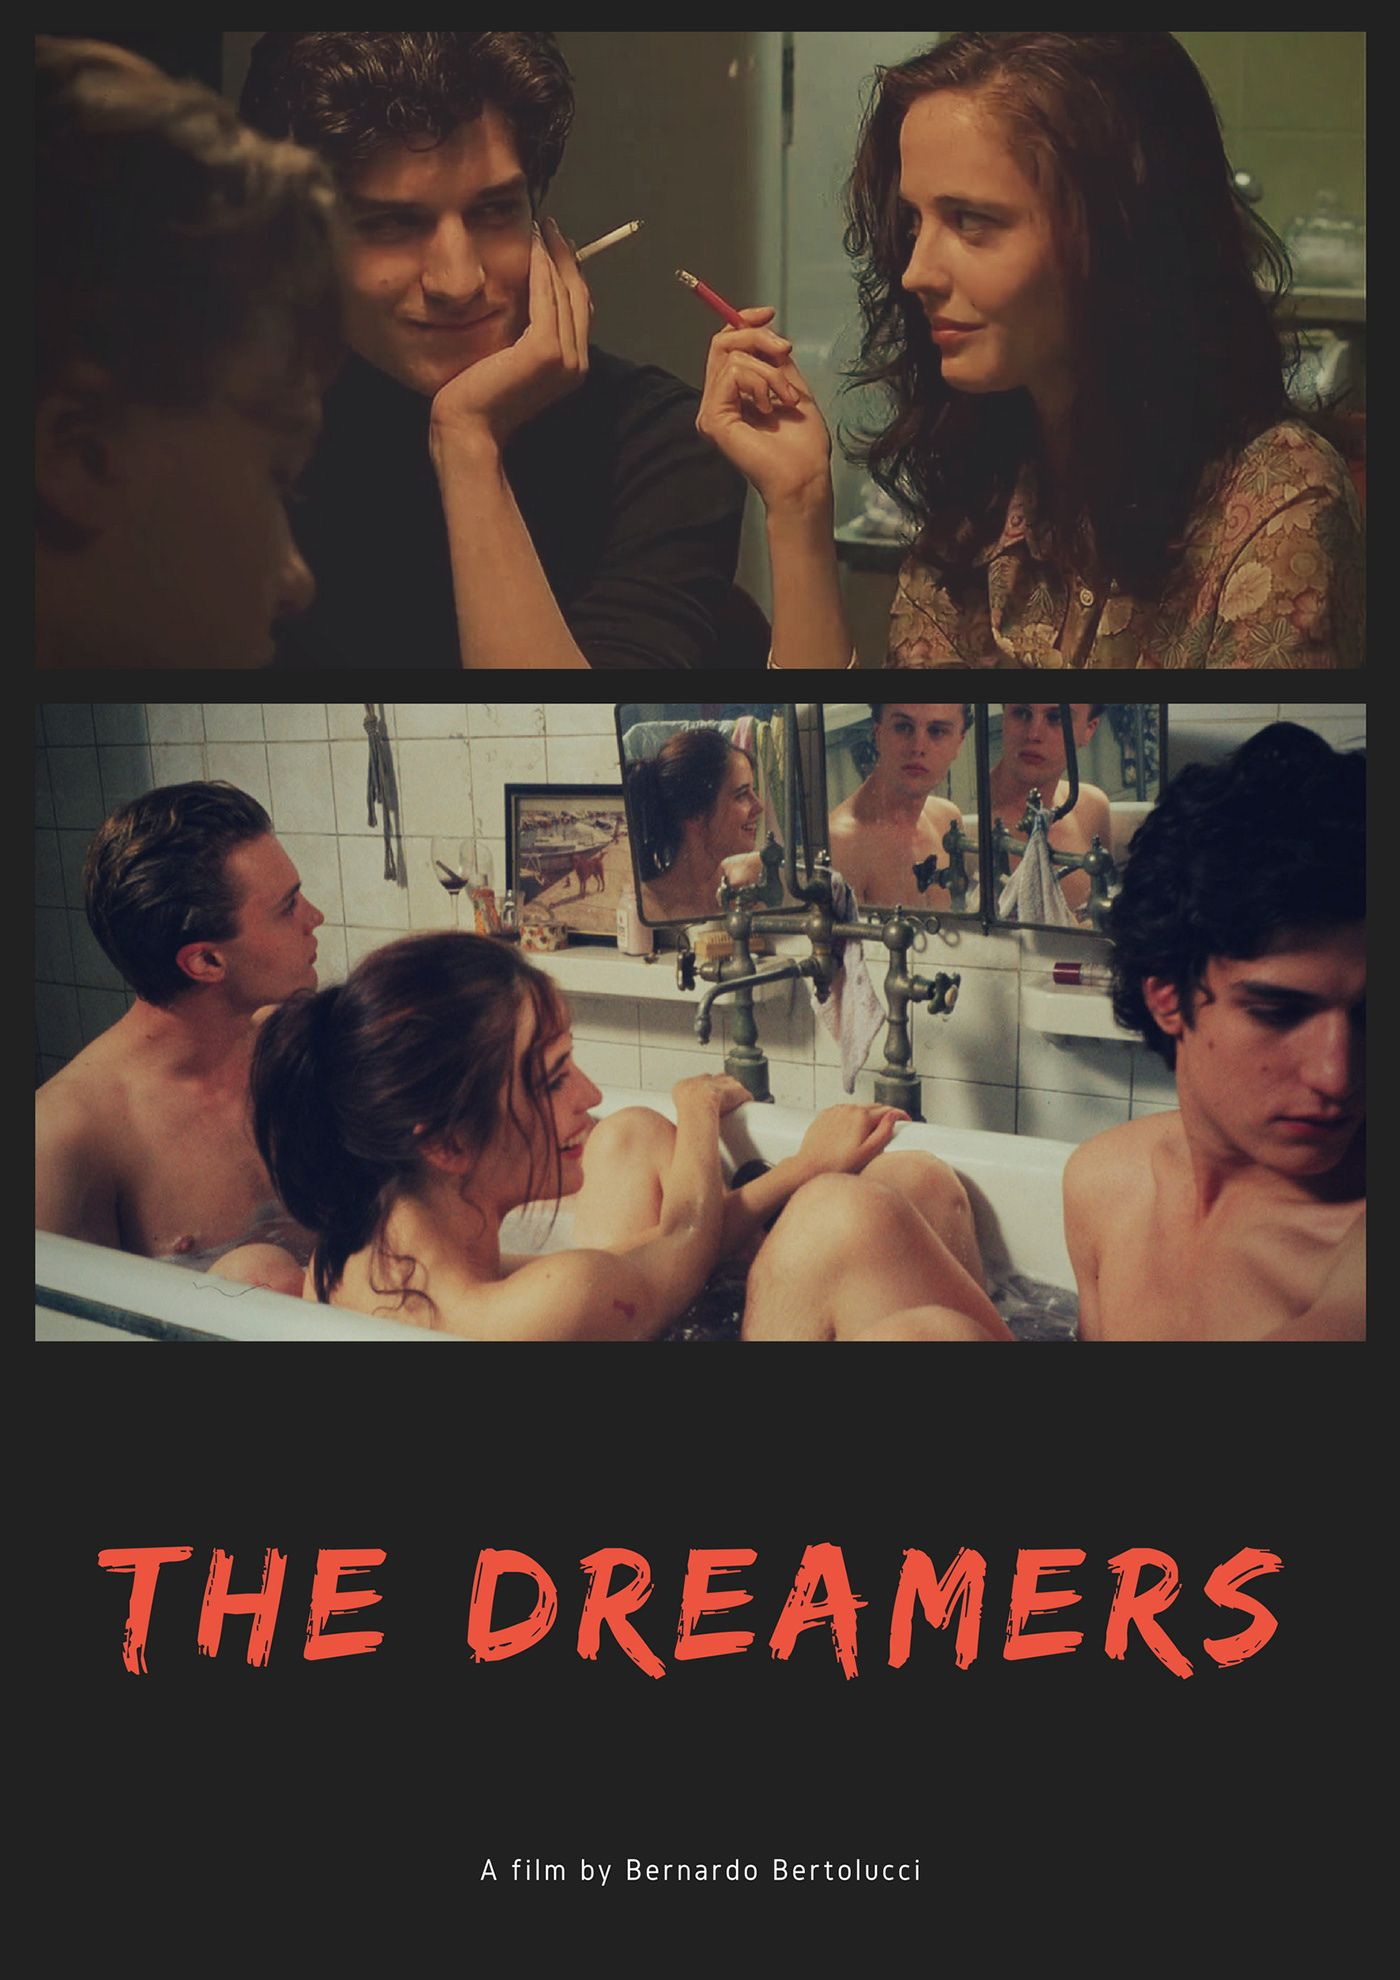 The dreamers nc 17 watch online